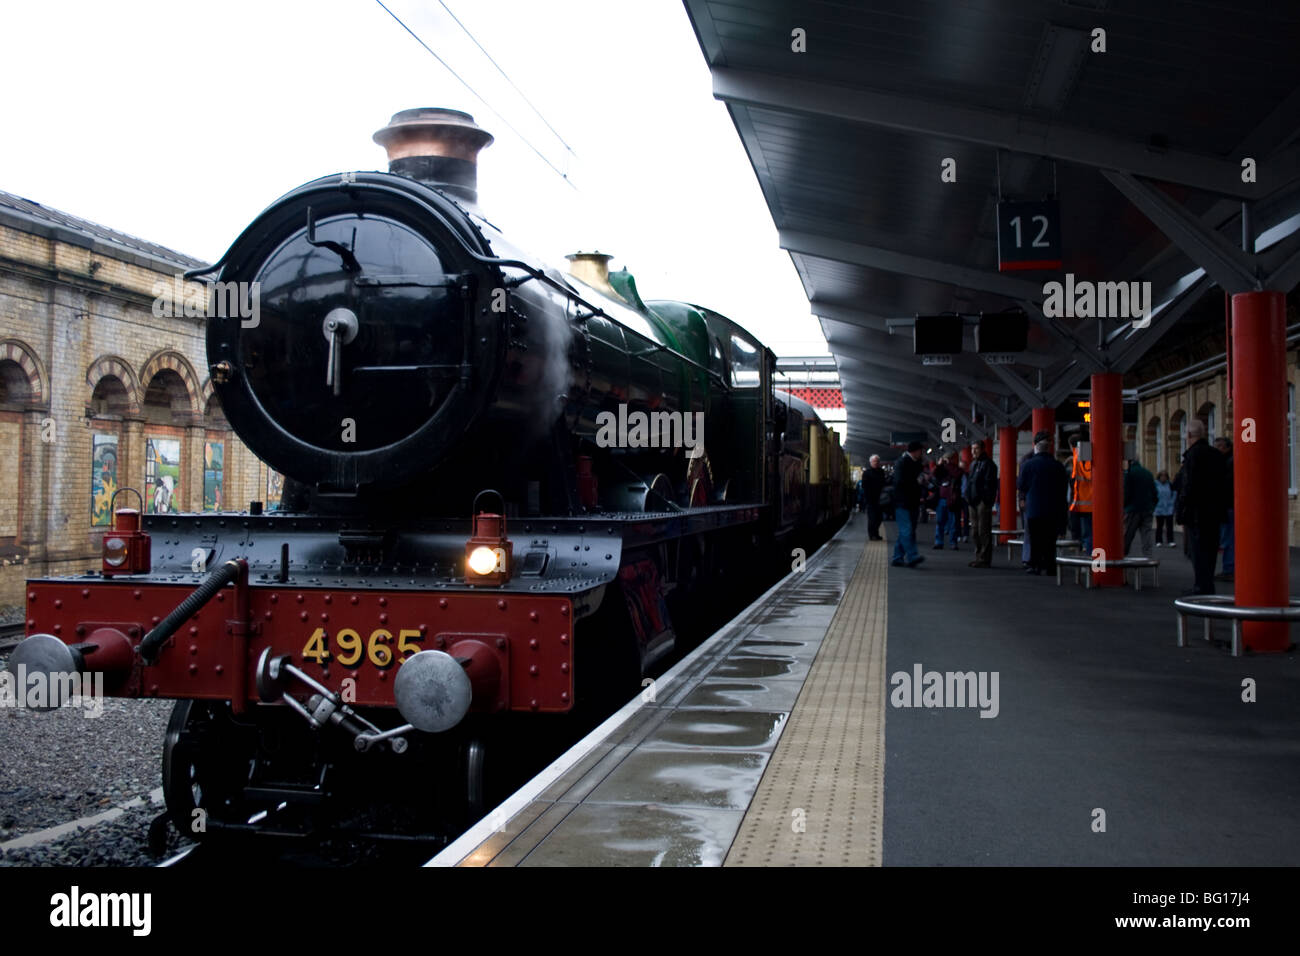 Great Western steam locomotive 'Rood Ashton Hall' picking up passengers at Crewe station - Stock Image